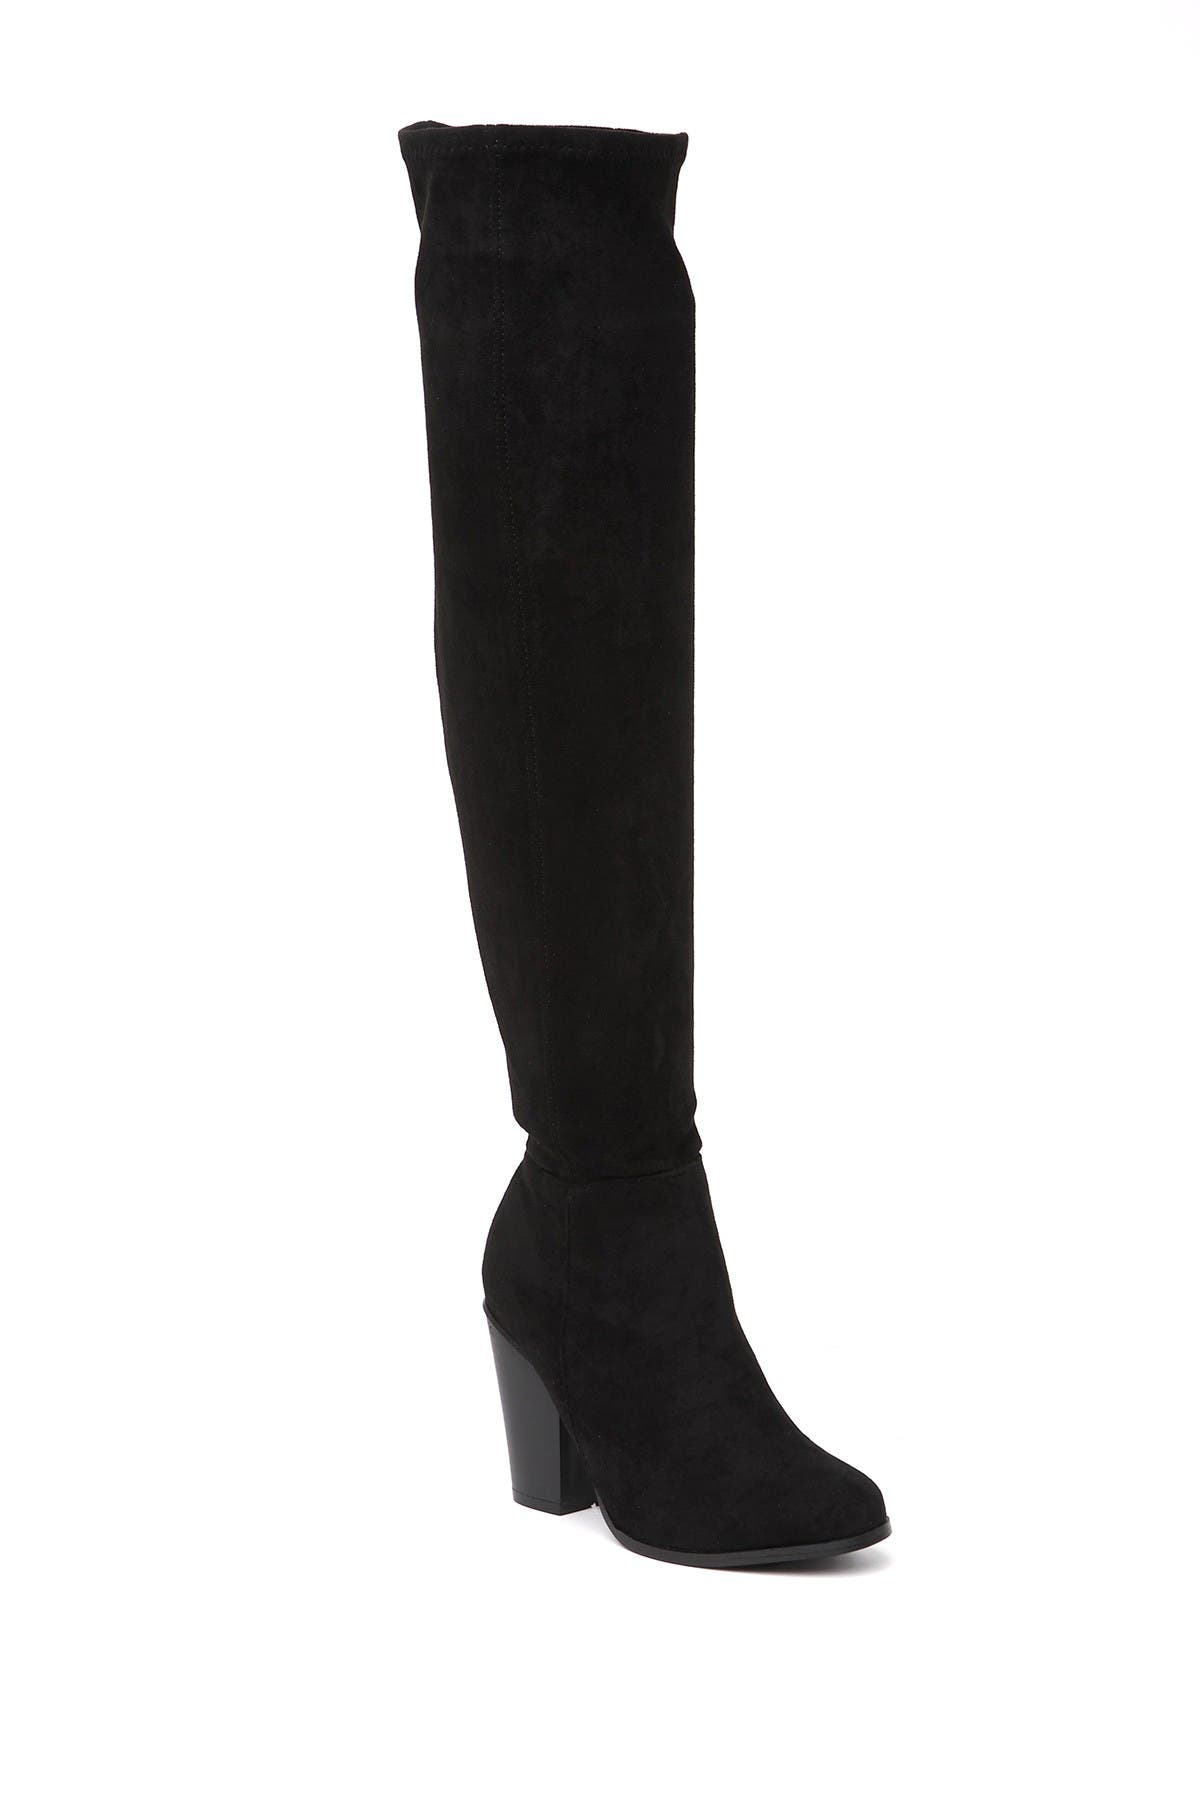 Image of Chase & Chloe Max Over-the-Knee Stacked Heel Boot